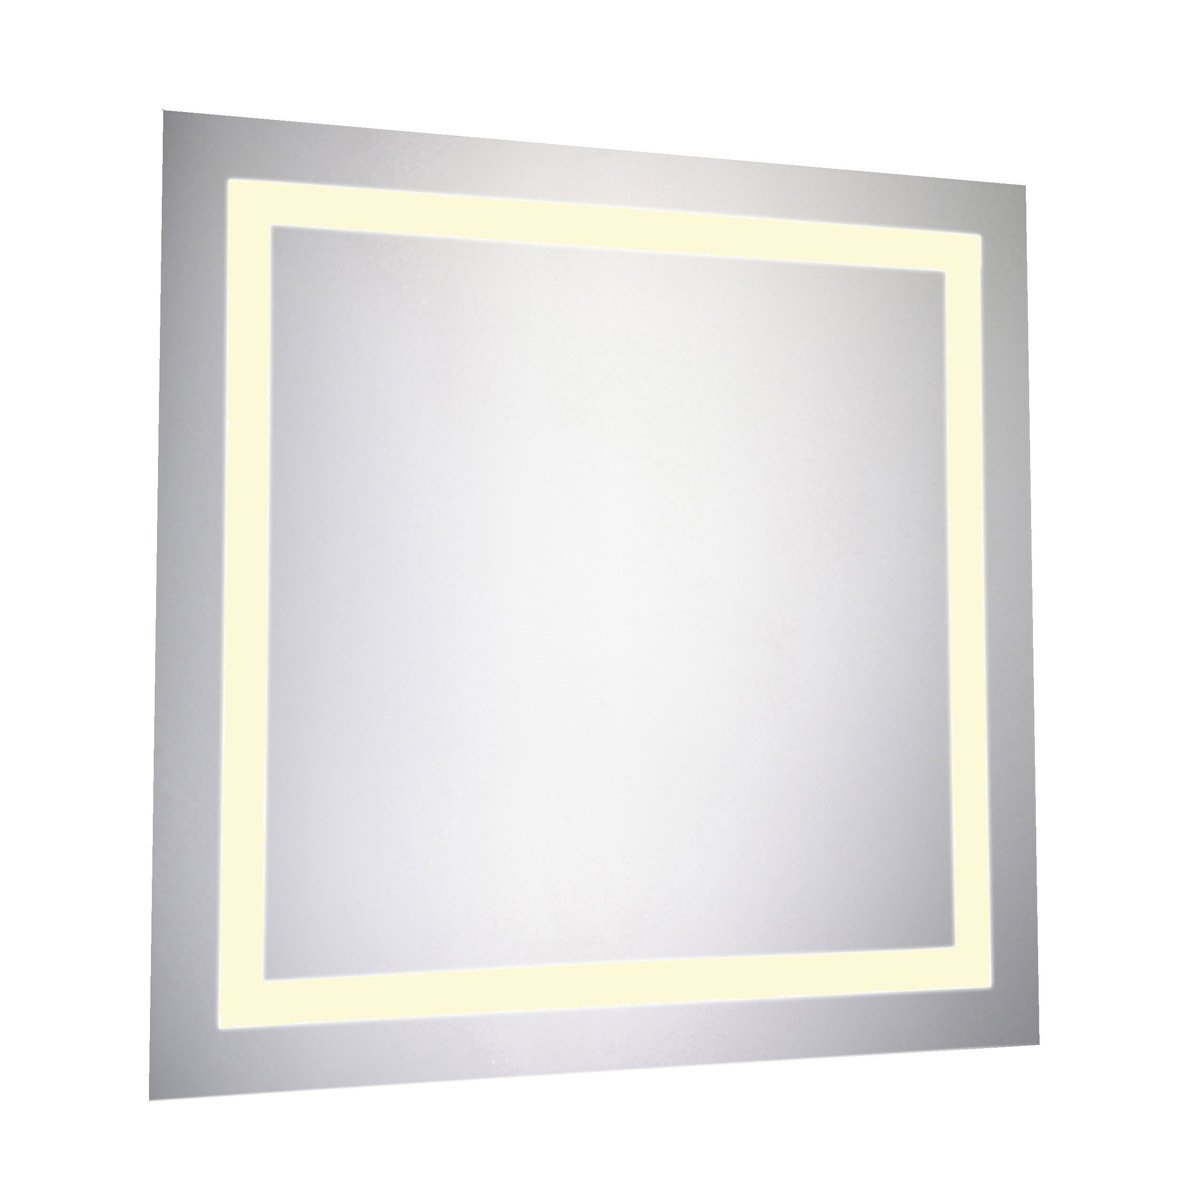 Nova 28 X 28 Hardwired Led Wall Mirror - Glossy White Finish (Mre-6020) Led Mirror